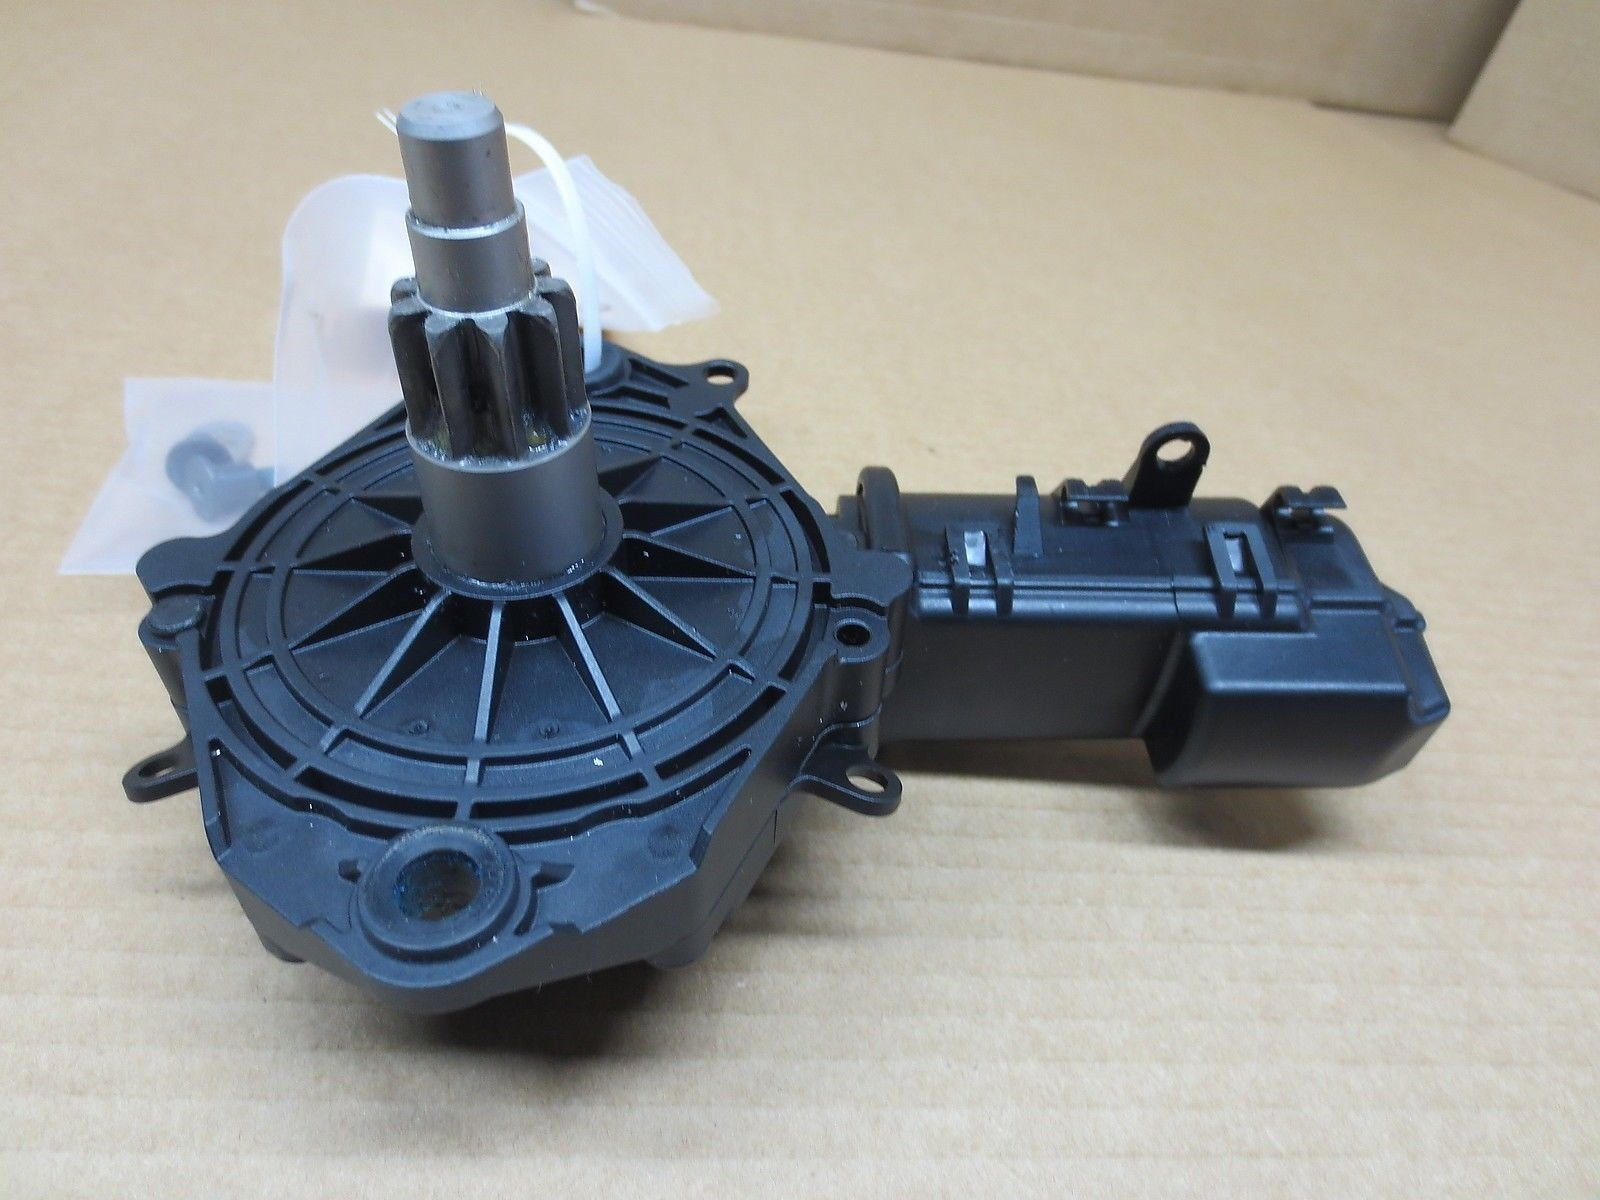 2013 Porsche 981 BOXSTER R Top Transmission Motor 98100017225 1,177